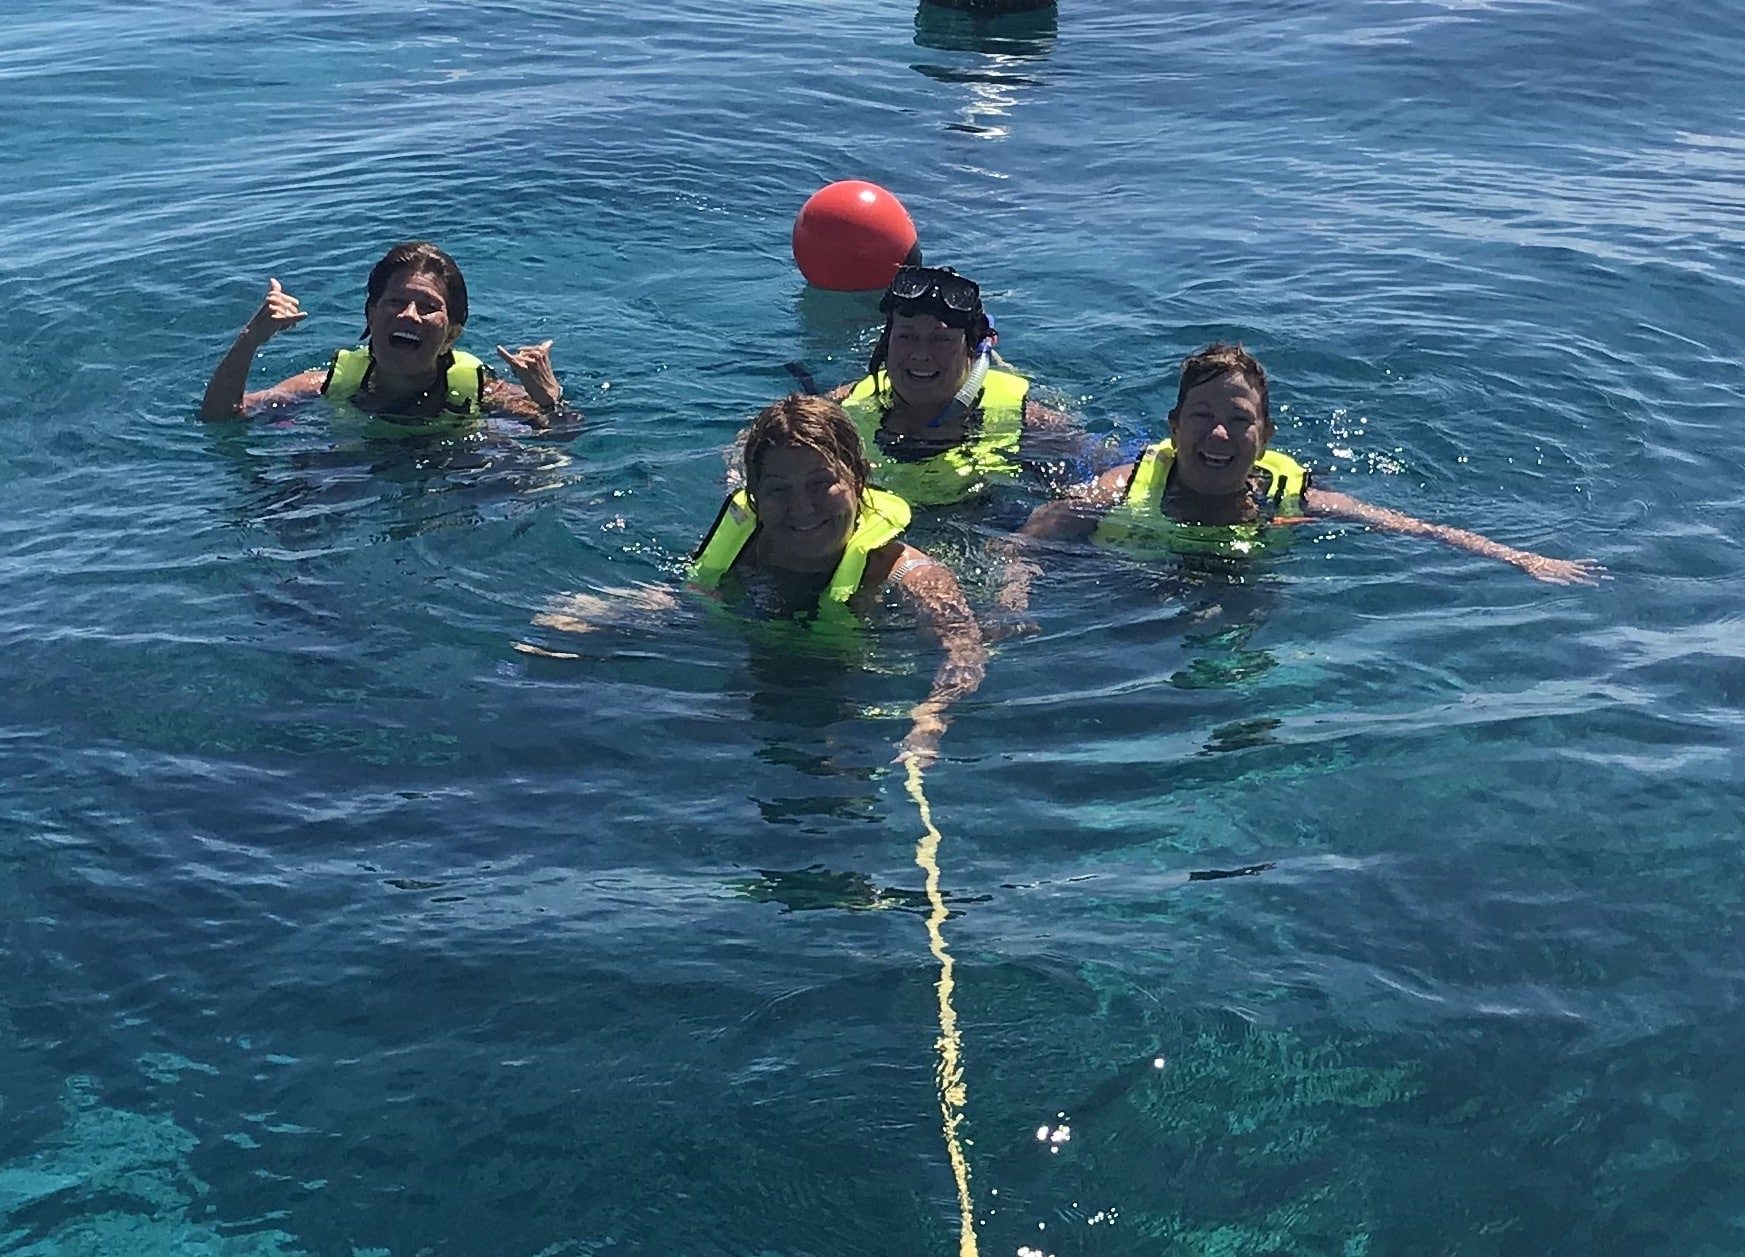 Snorkelers on tag line in blue water